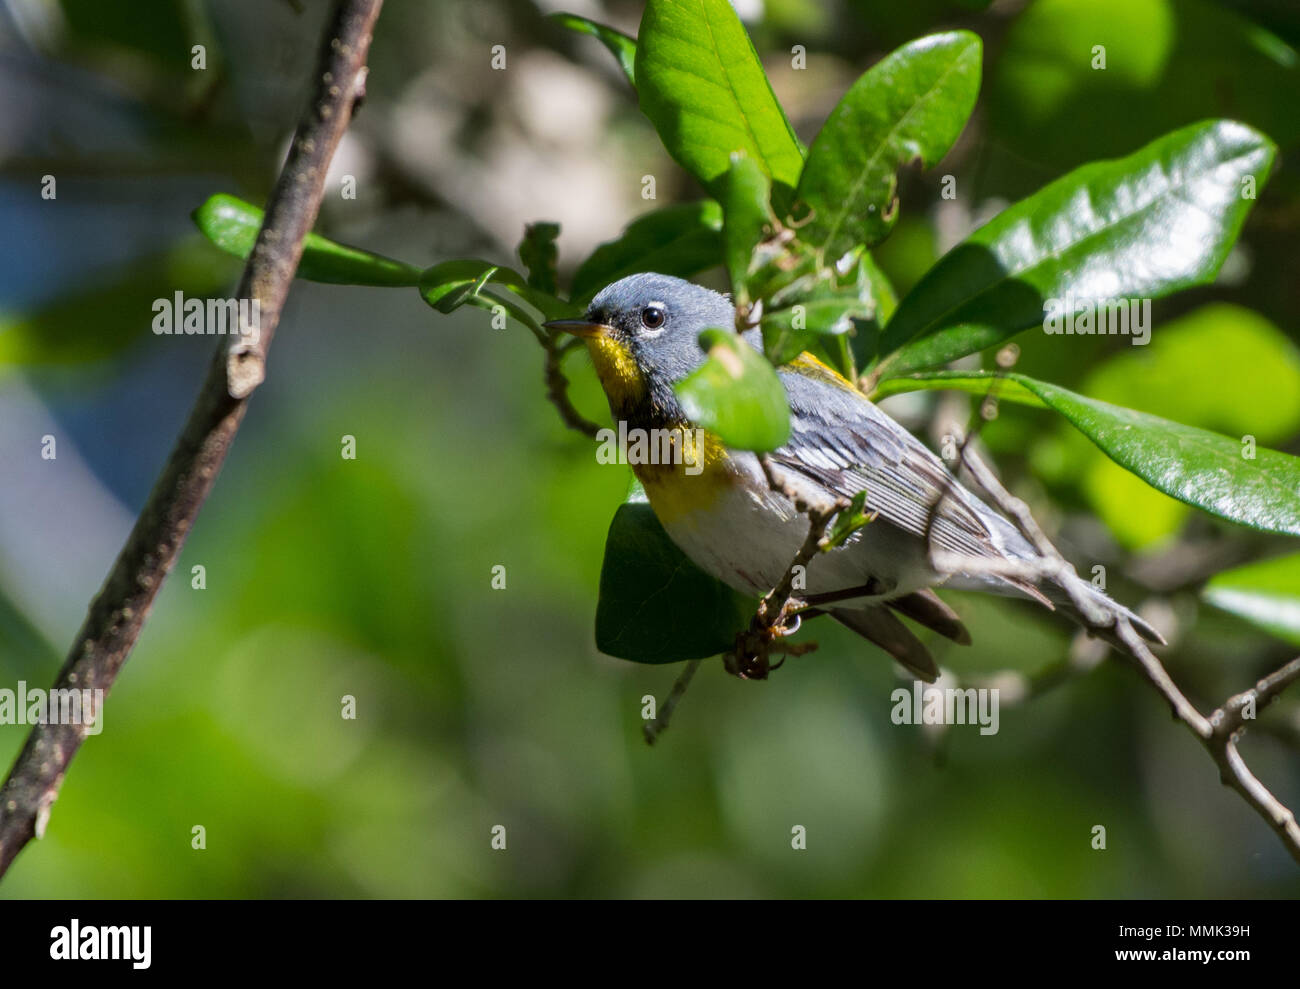 A Northern Parula (Setophaga americana) perched on a branch. High Island, Texas, USA. - Stock Image